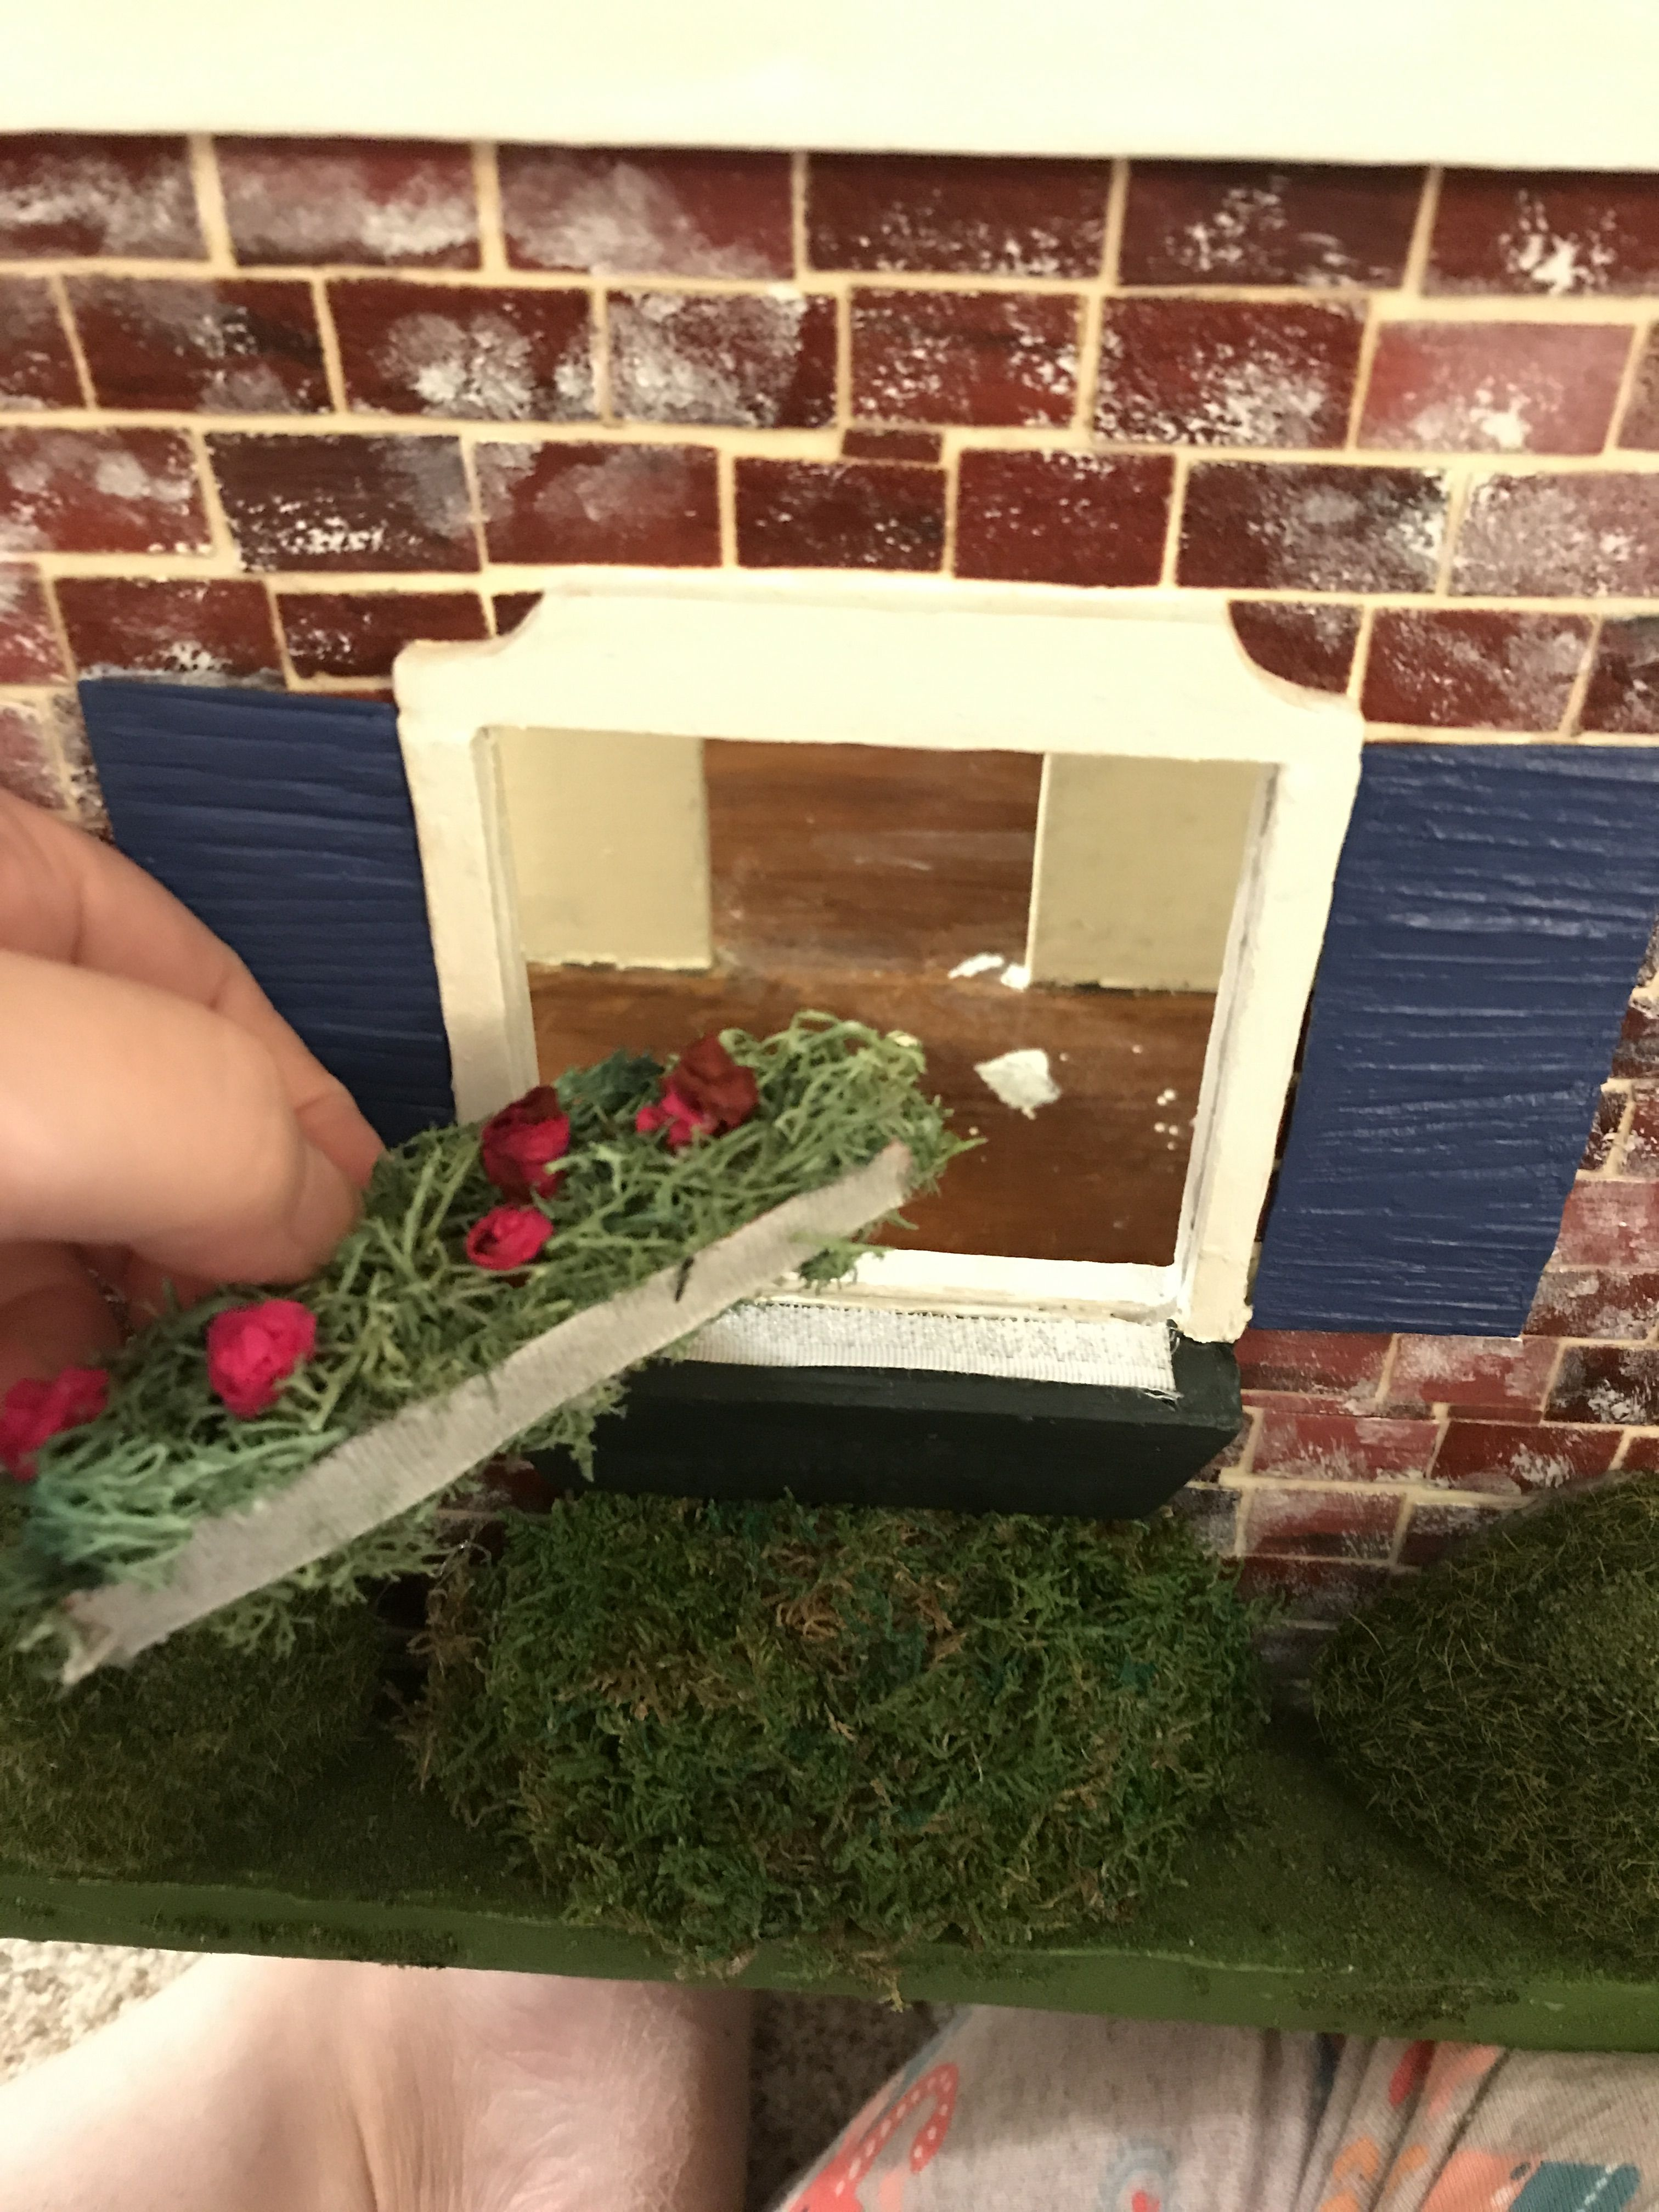 Create Velcro flower window boxes for your dollhouse to change them out seasonally. You need..hot glue gun..bag moss or loose greenery...strip of Velcro and plants of your choice.